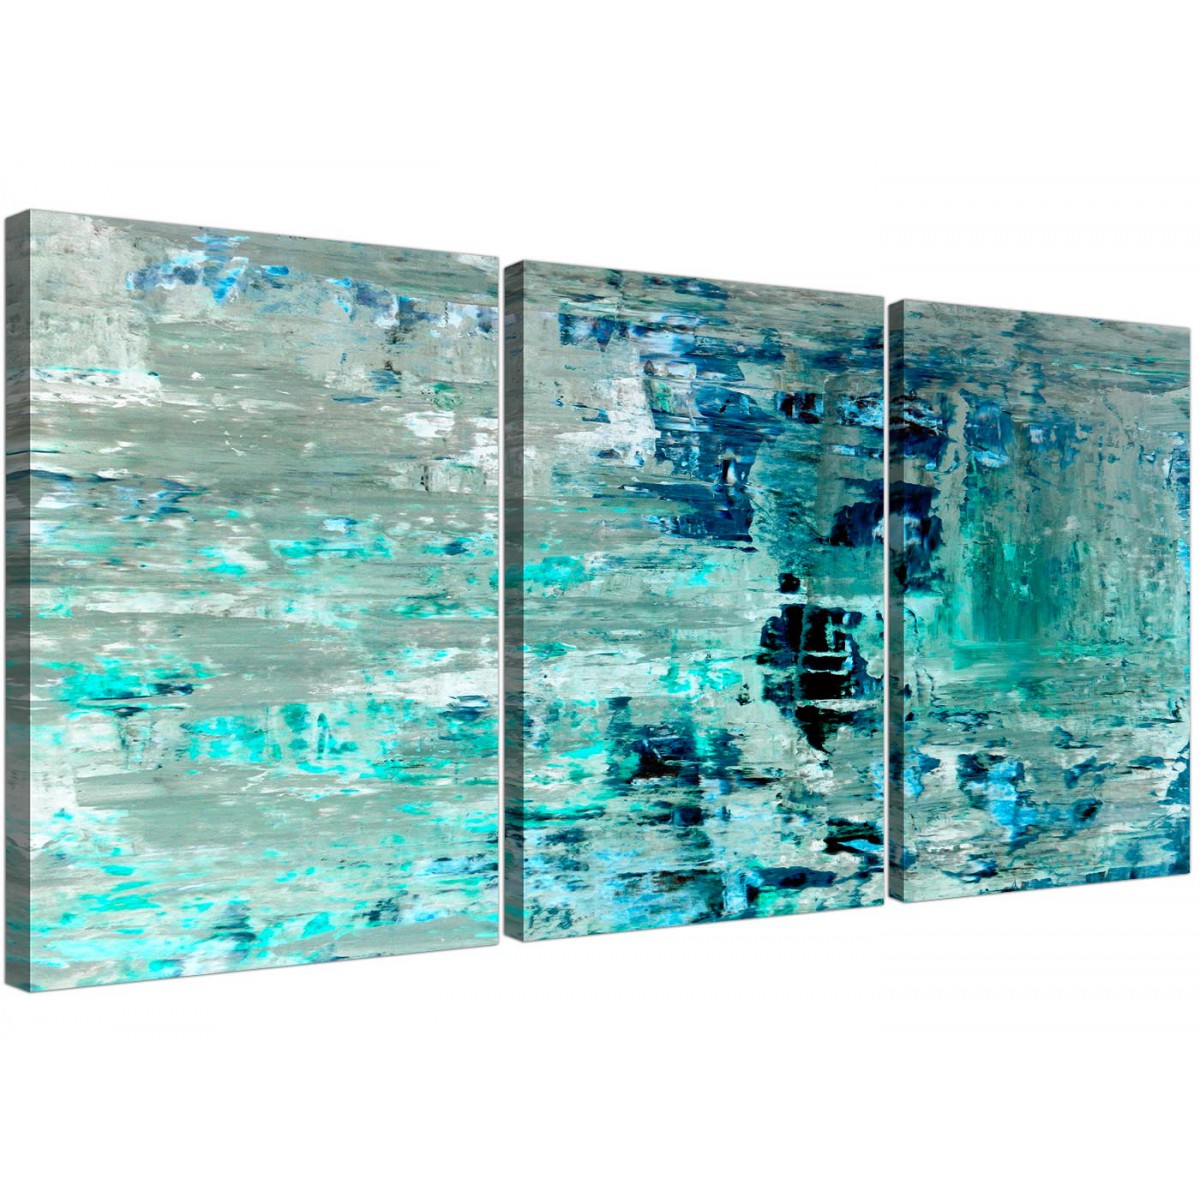 Abstract Art Prints On Canvas Turquoise Teal Abstract Painting Wall Art Print Canvas Split 3 Piece 3333